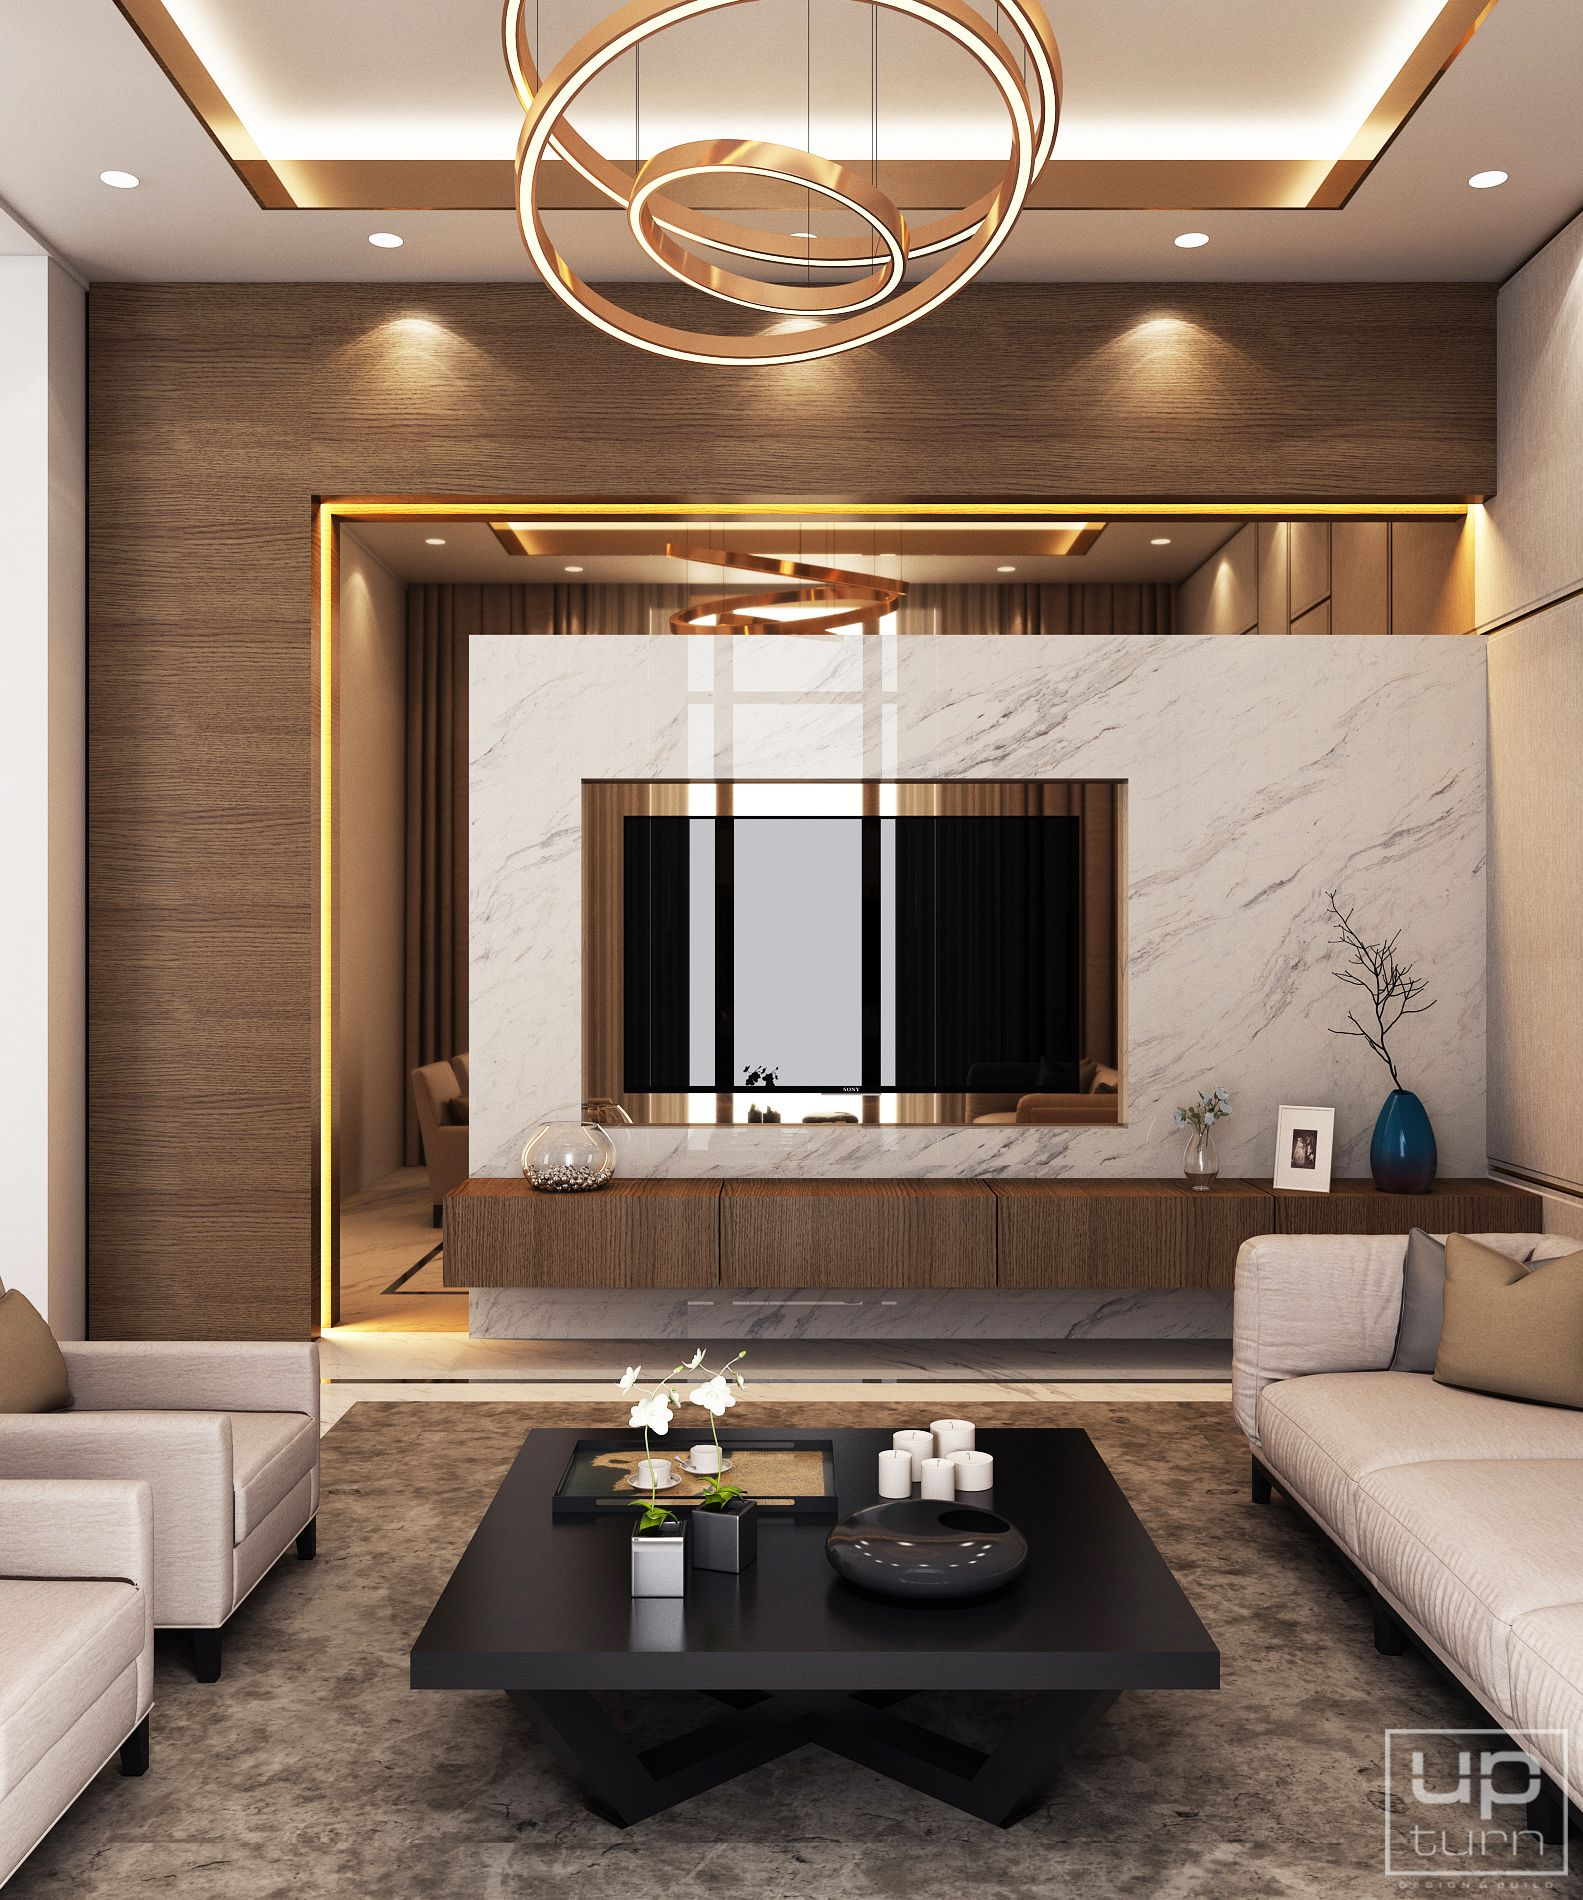 Luxurious Home Interior On Behance In 2020 Living Room Design Modern Luxury Living Room Luxury Living Room Design